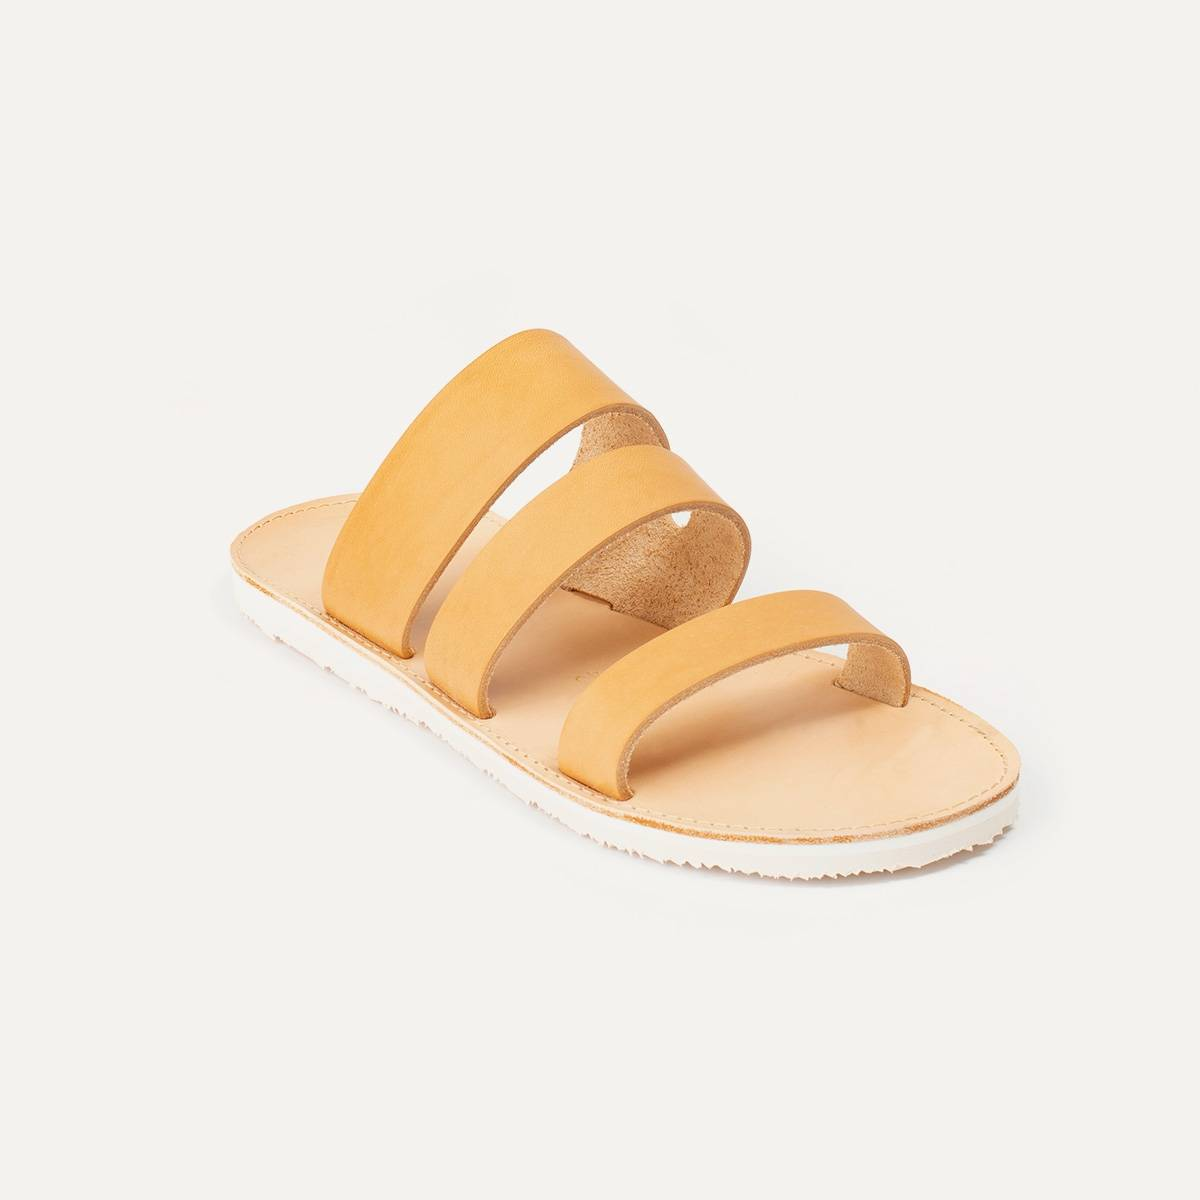 Athos leather sandals - Natural (image n°3)